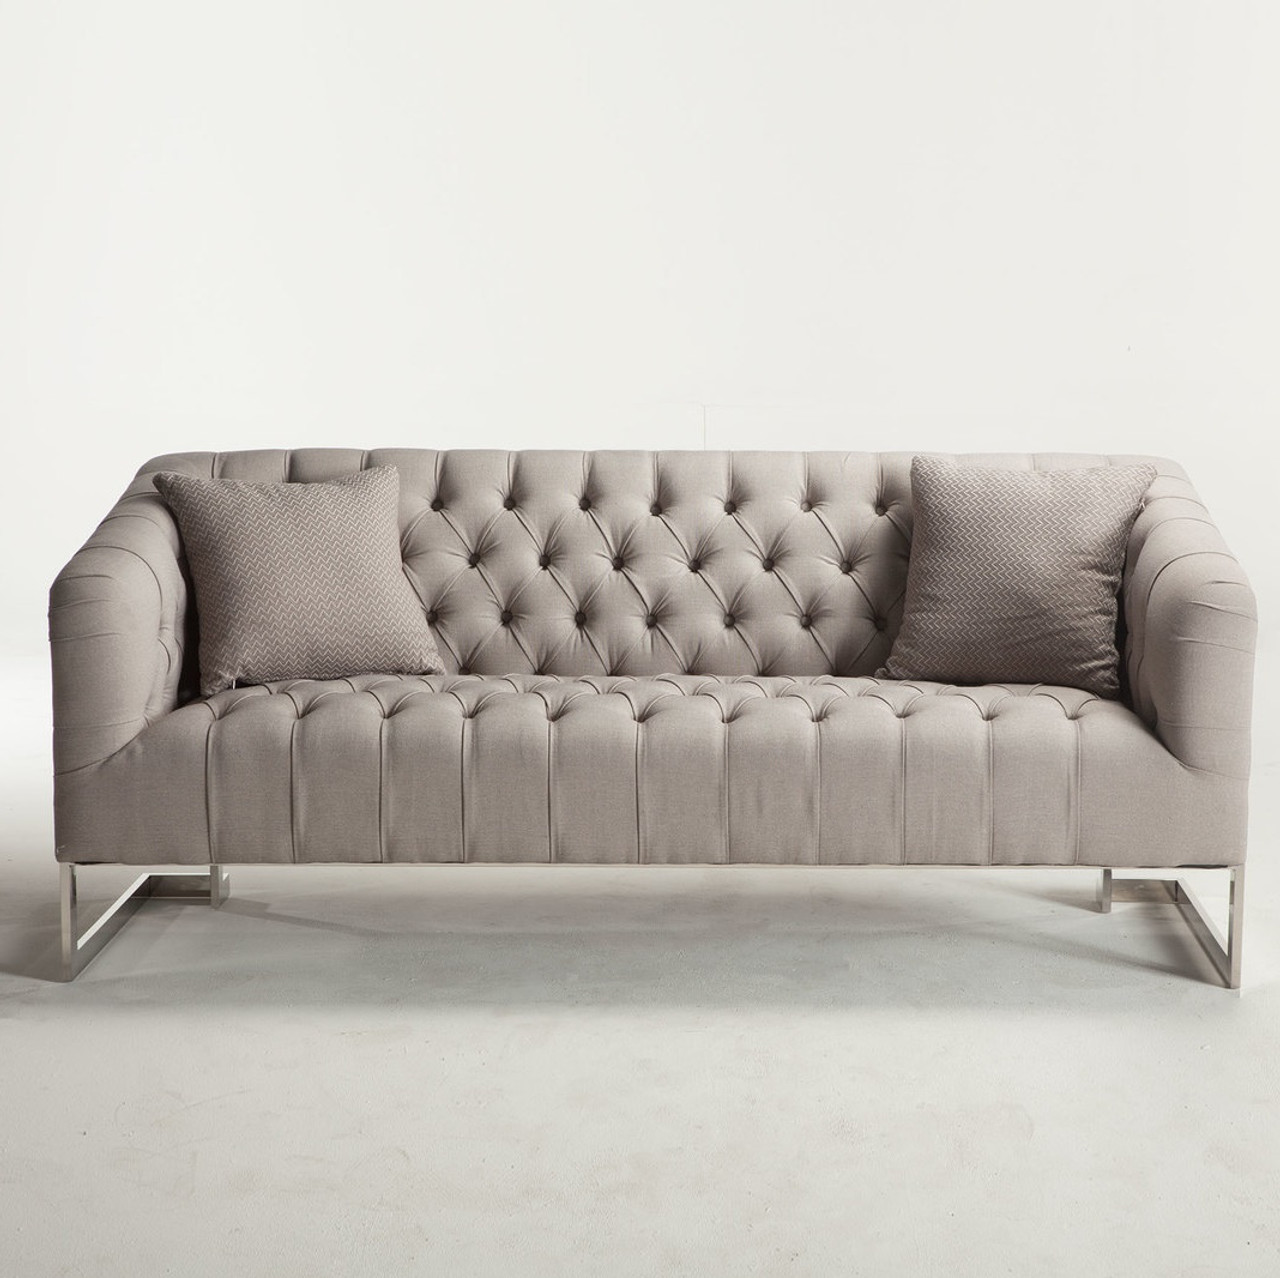 Austin Modern Tufted Sofa - Grey | Zin Home